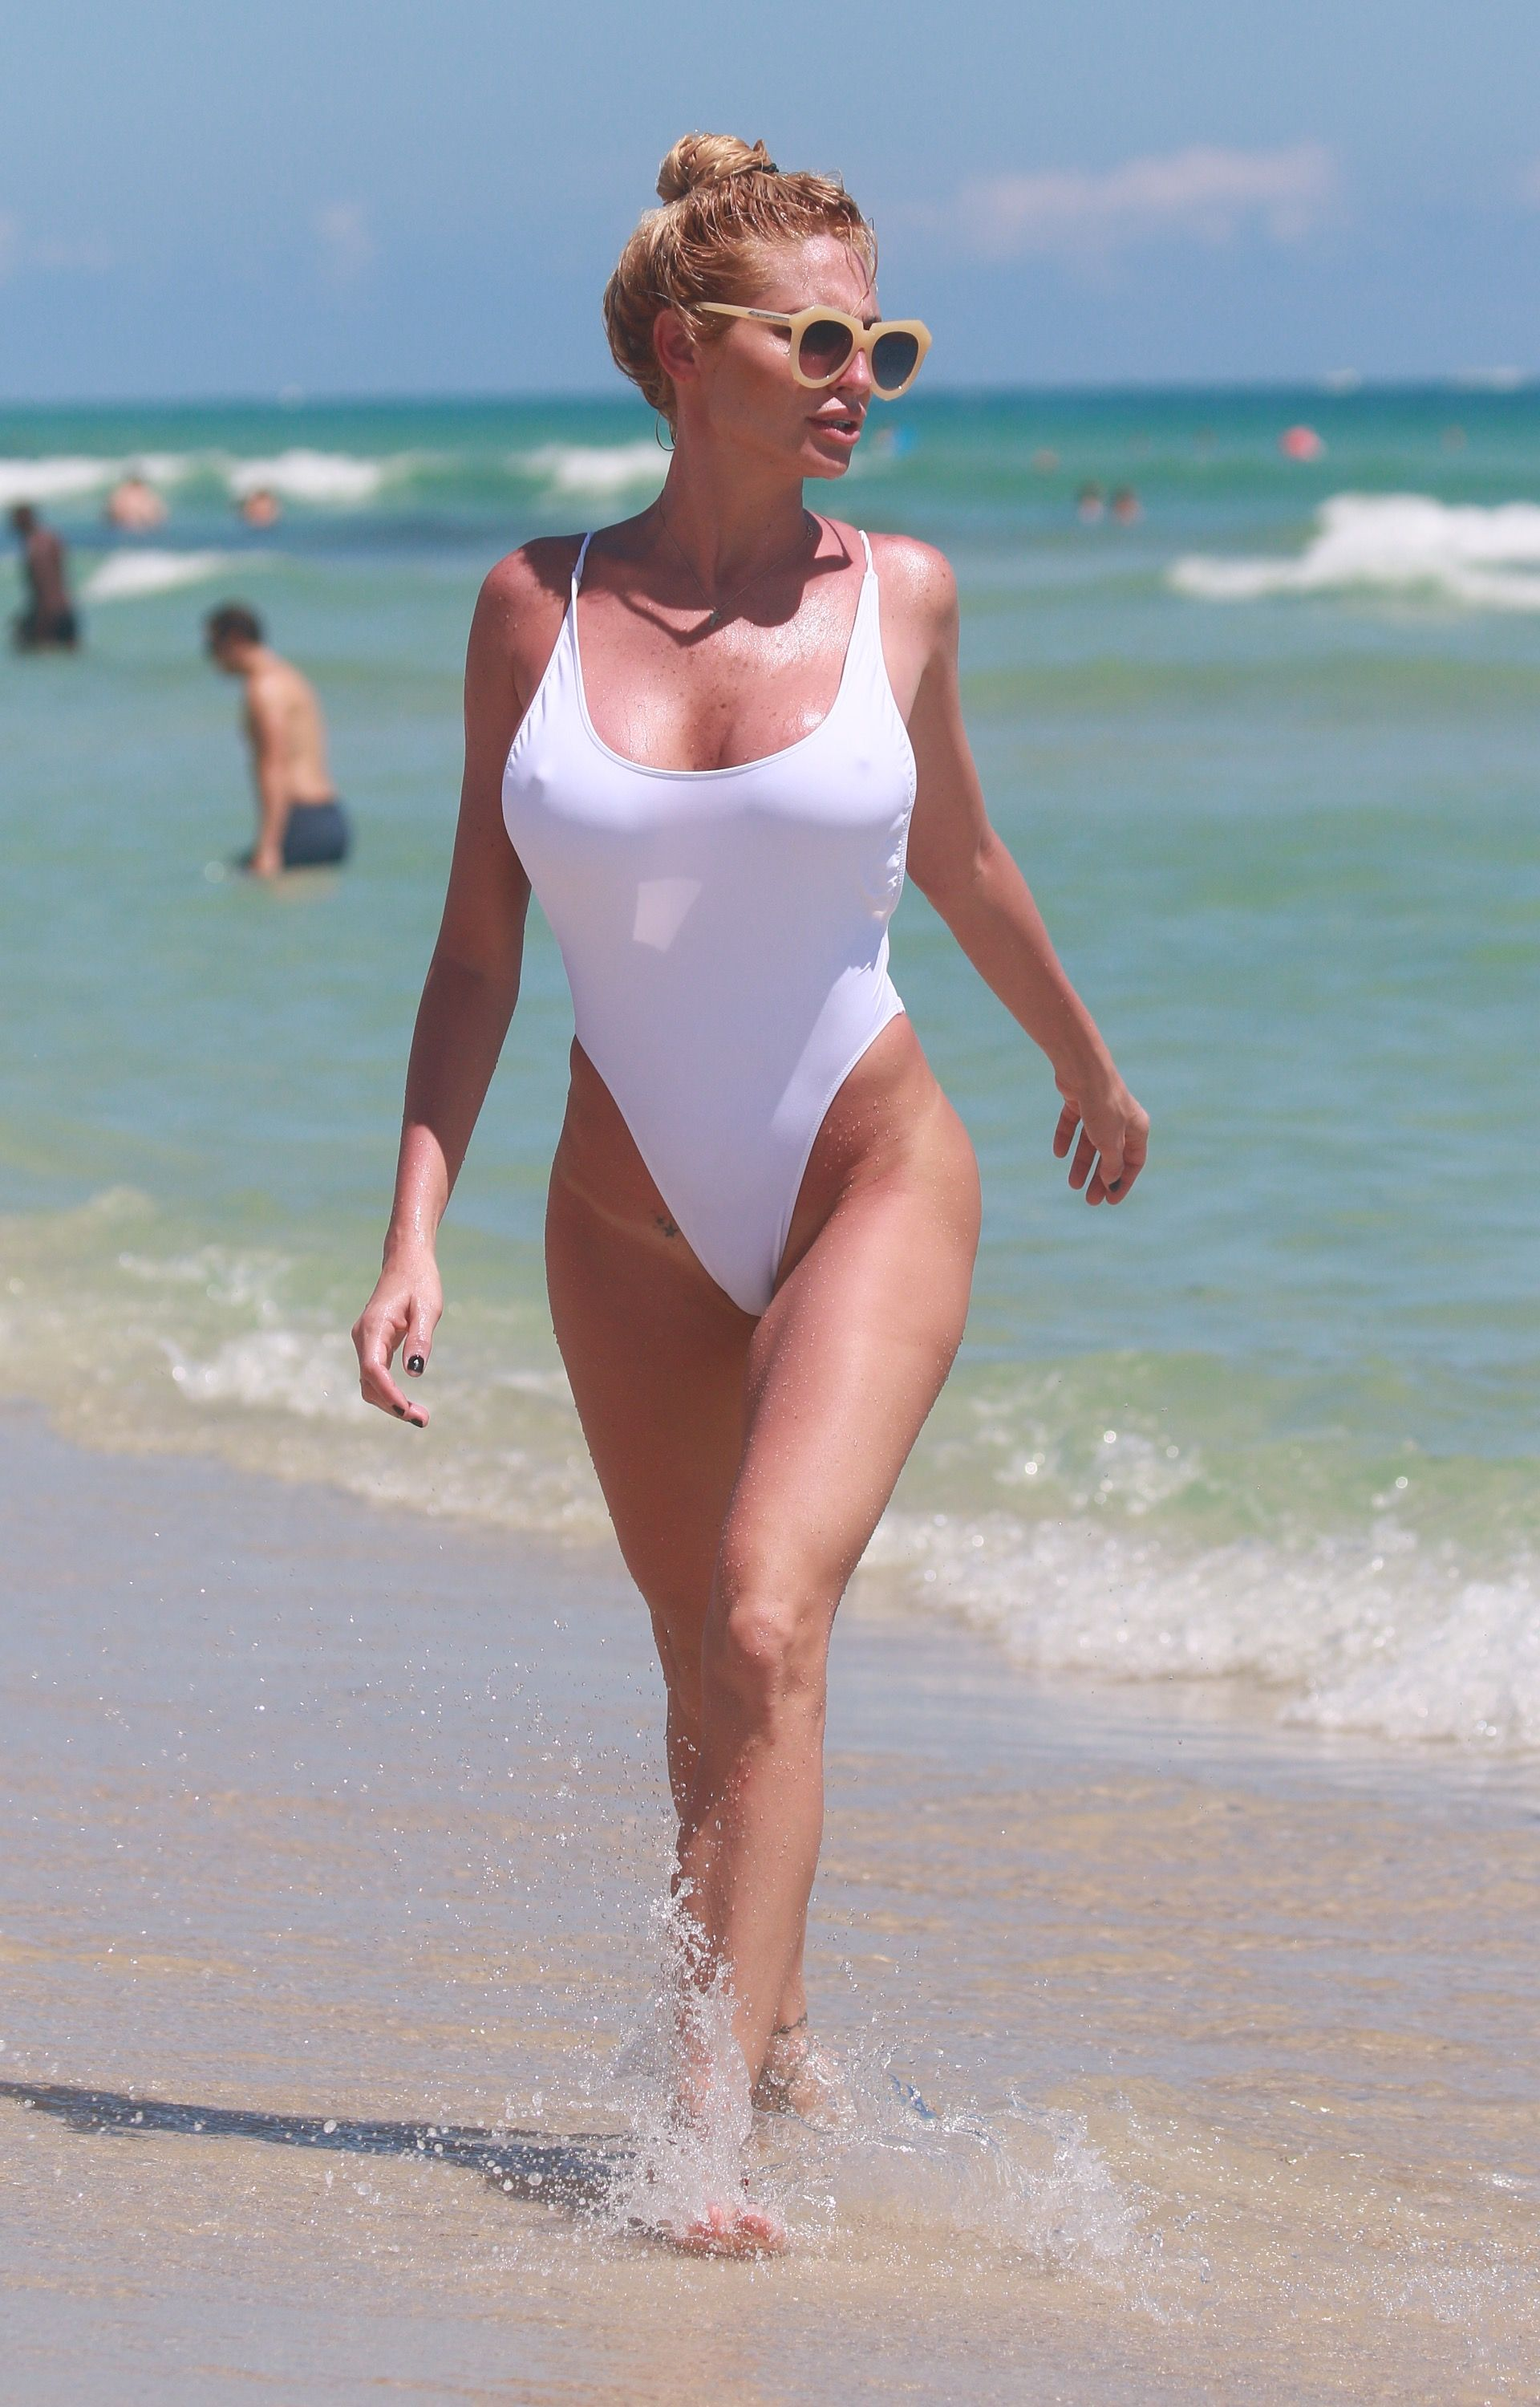 Vicky Xipolitakis Sexy Thefappening.so 10